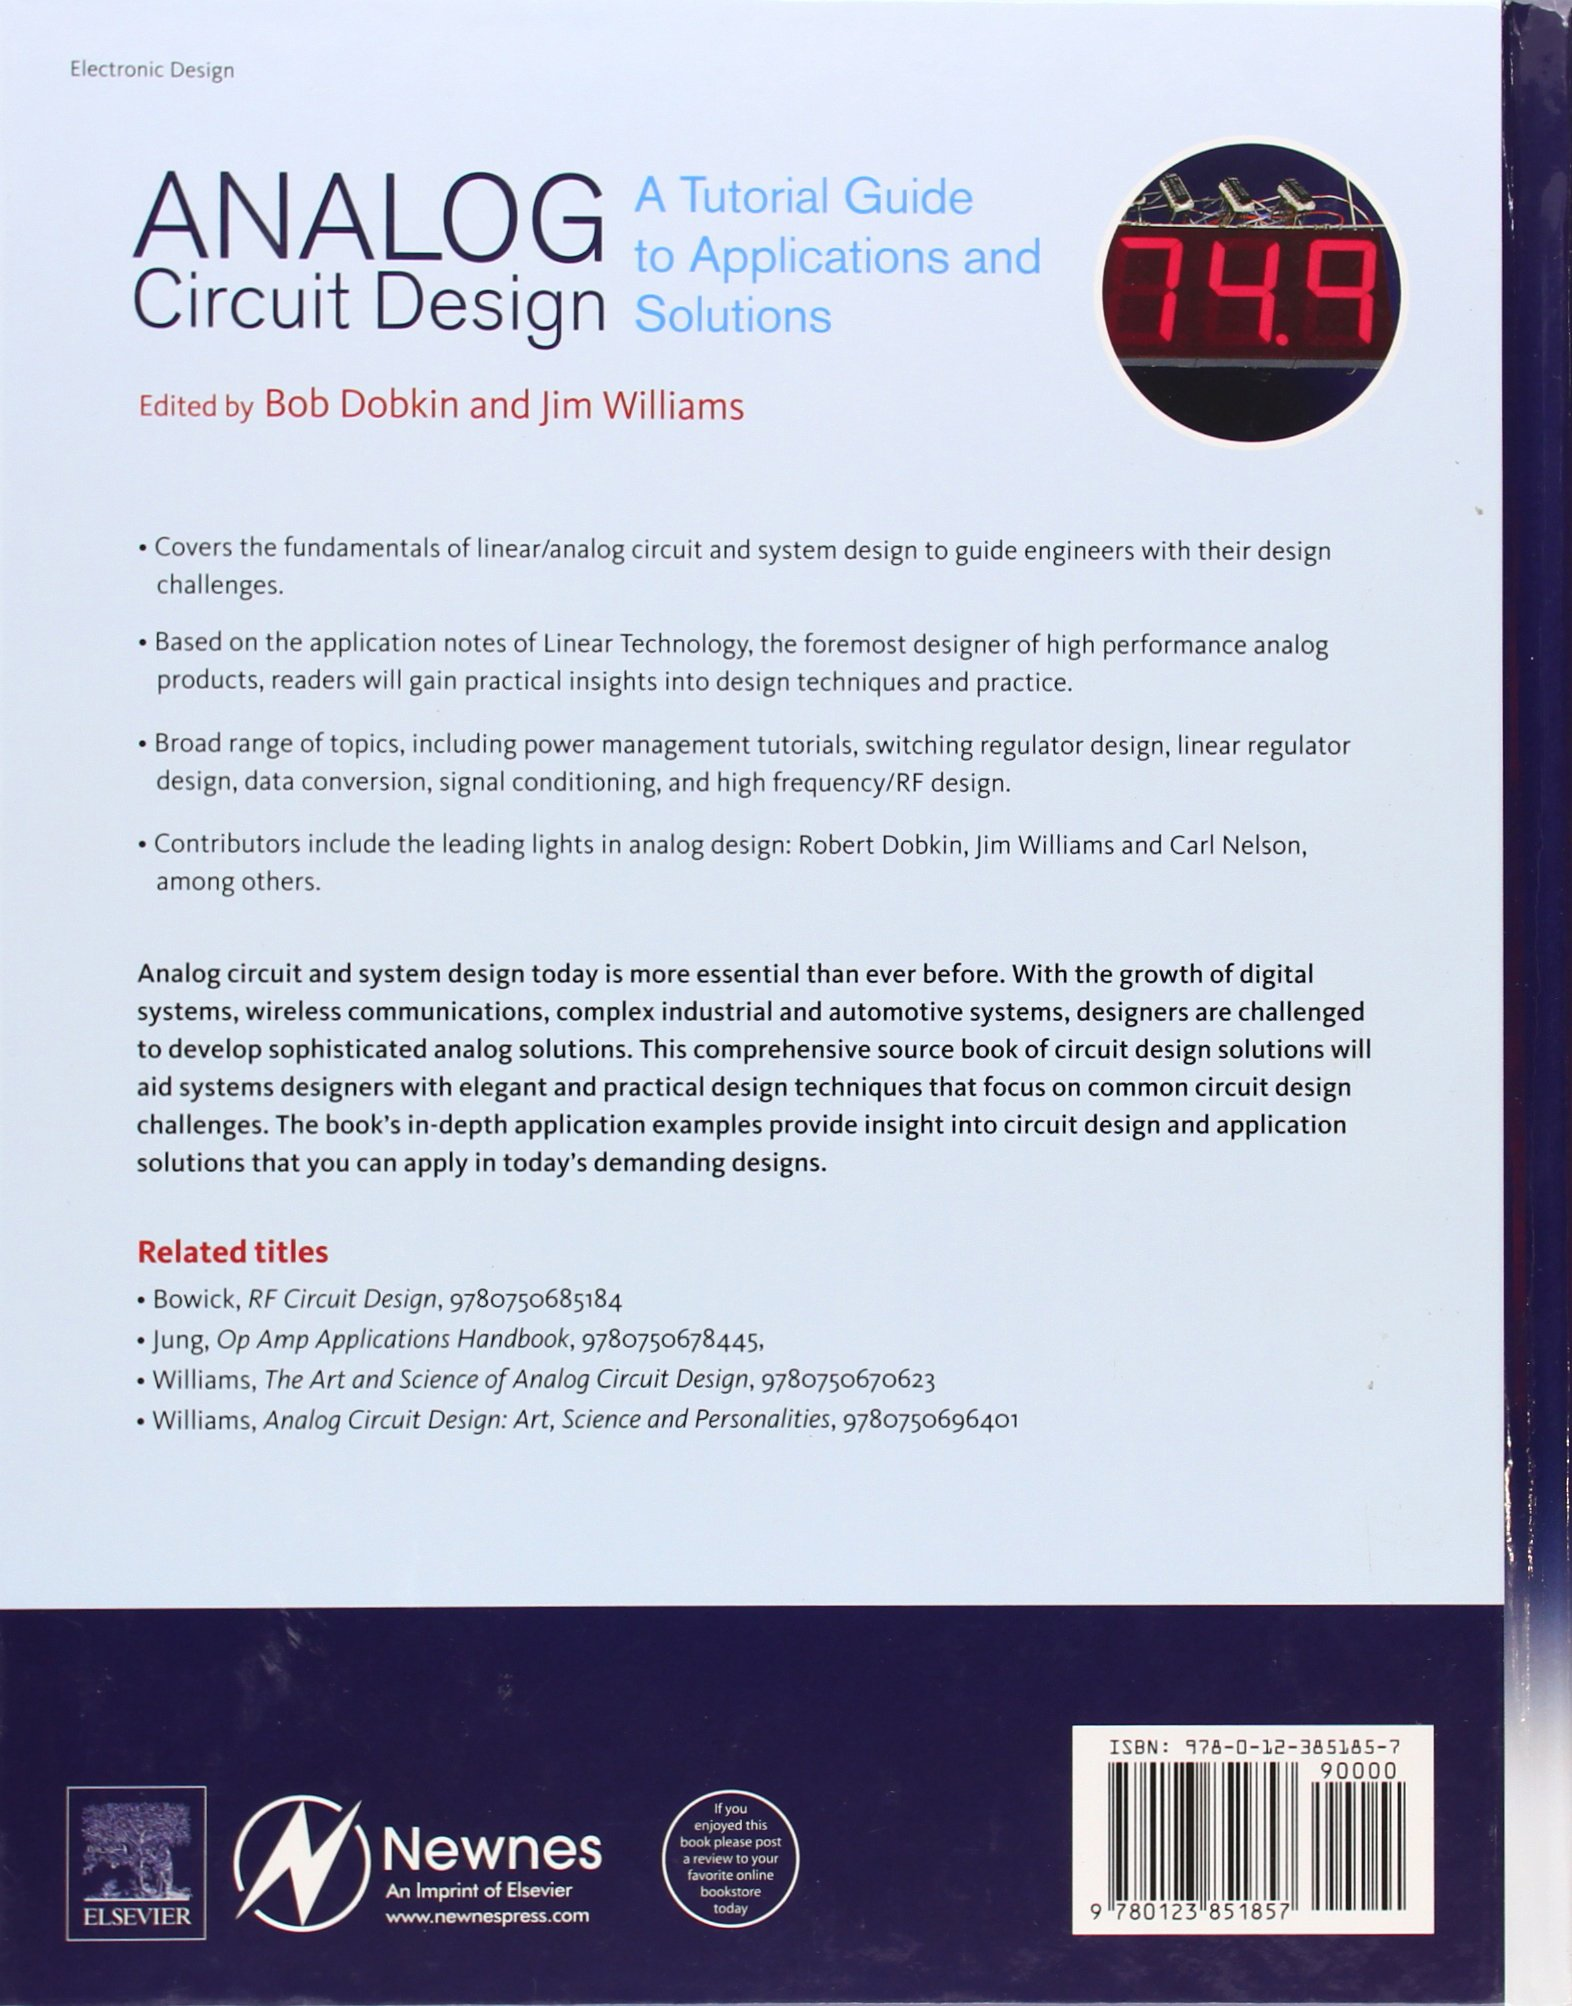 Analog Circuit Design A Tutorial Guide To Applications And Fundamentals Of Linear Electronics Integrated Discrete Circuitry Solutions Bob Dobkin Jim Williams 9780123851857 Books